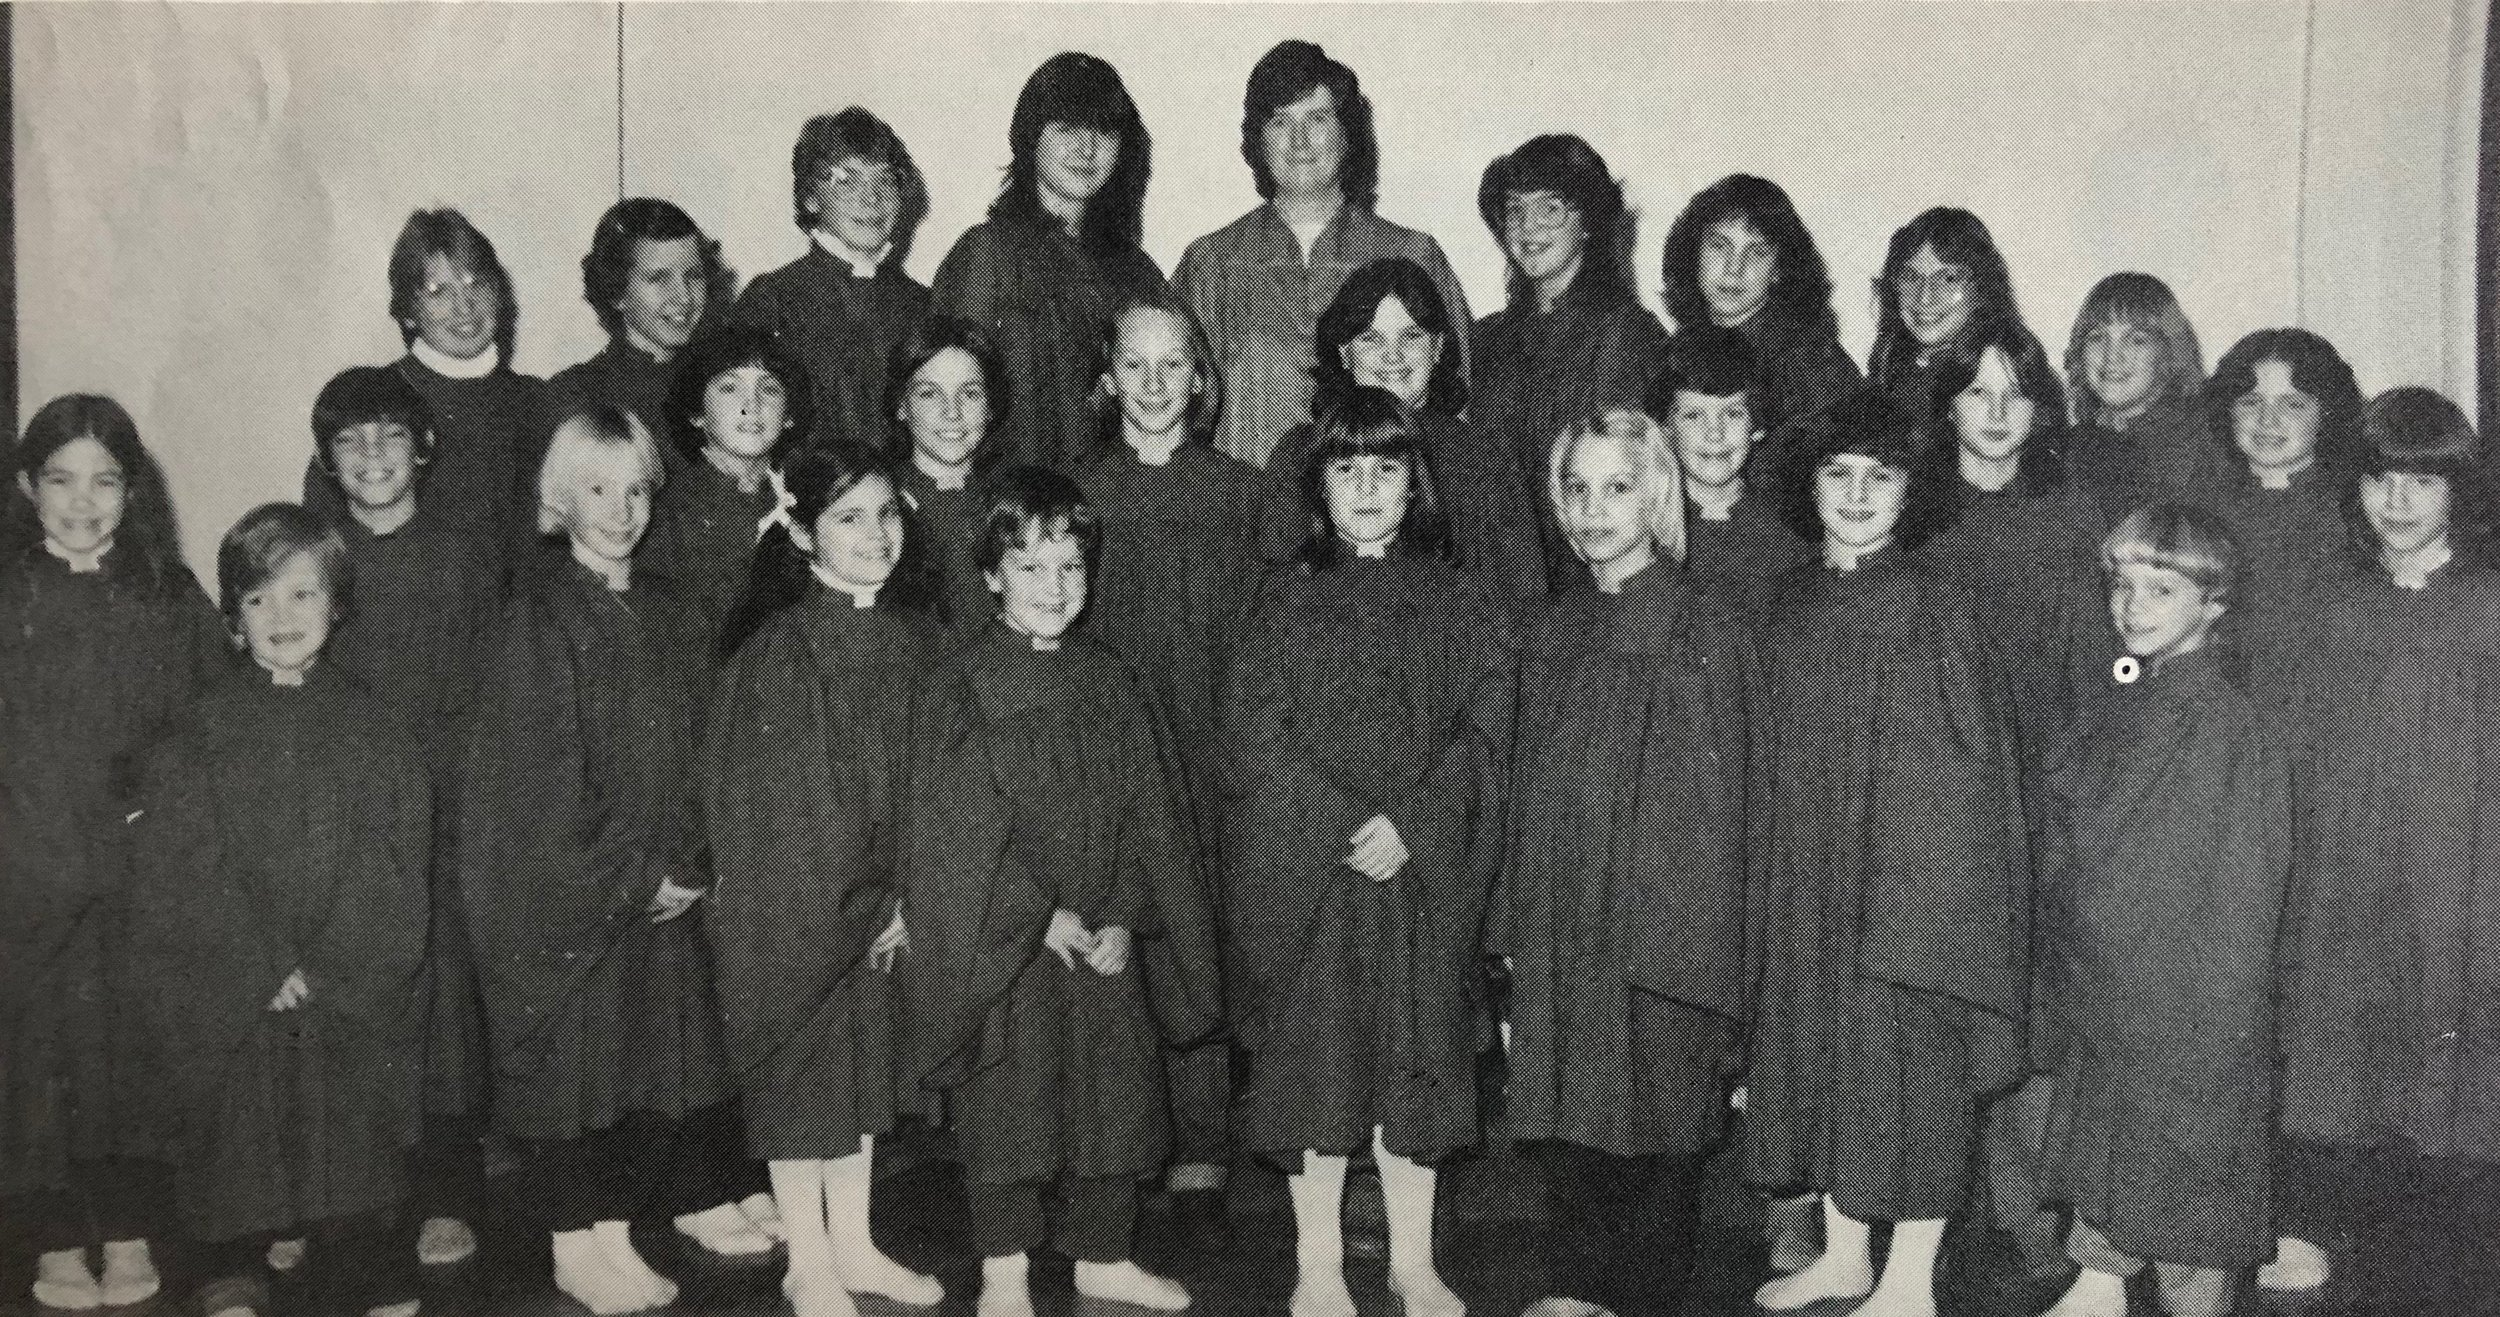 Junior Choir 1982 Back Row L-R:  Jackie Aitchison, Elizabeth Johnston, Jill Bender, Carol Theodorf, Marion Bristowe (Director), Mary Lynn McCutcheon, Sherry Stewart, Julie Williamson, Julie Crummer  Middle Row:  Lori McCutcheon, David Stewart, Stephanie Bradley, Kendra Crummer, Lisa Rozendal, Lisa Smith, Larry Doan, Tracy Bristowe, Jennifer Corry  Front Row : Jimmie McCutcheon, Kelly Rozendal, Shannon Turner, Brian Courtney, Lisa Williamson, Patty Schinbein, Heather Hood, Stephanie Schinbein, Terry Bristowe